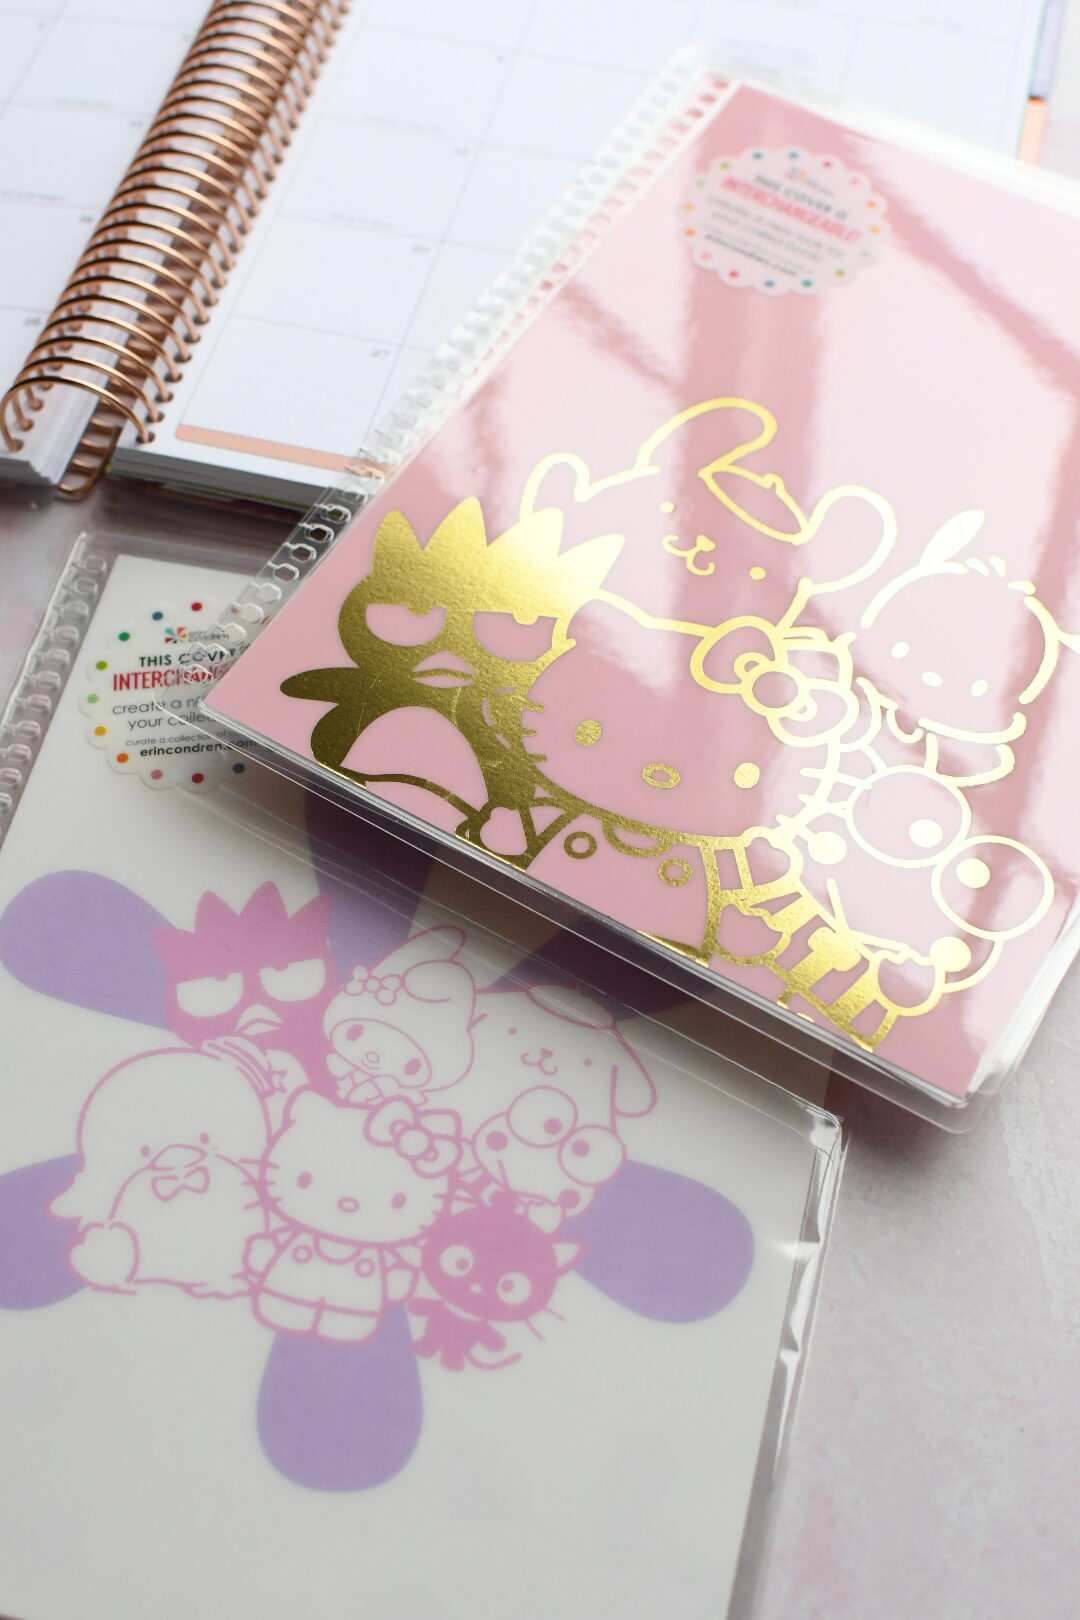 Revealing The NEW Hello Kitty Collection From Erin Condren